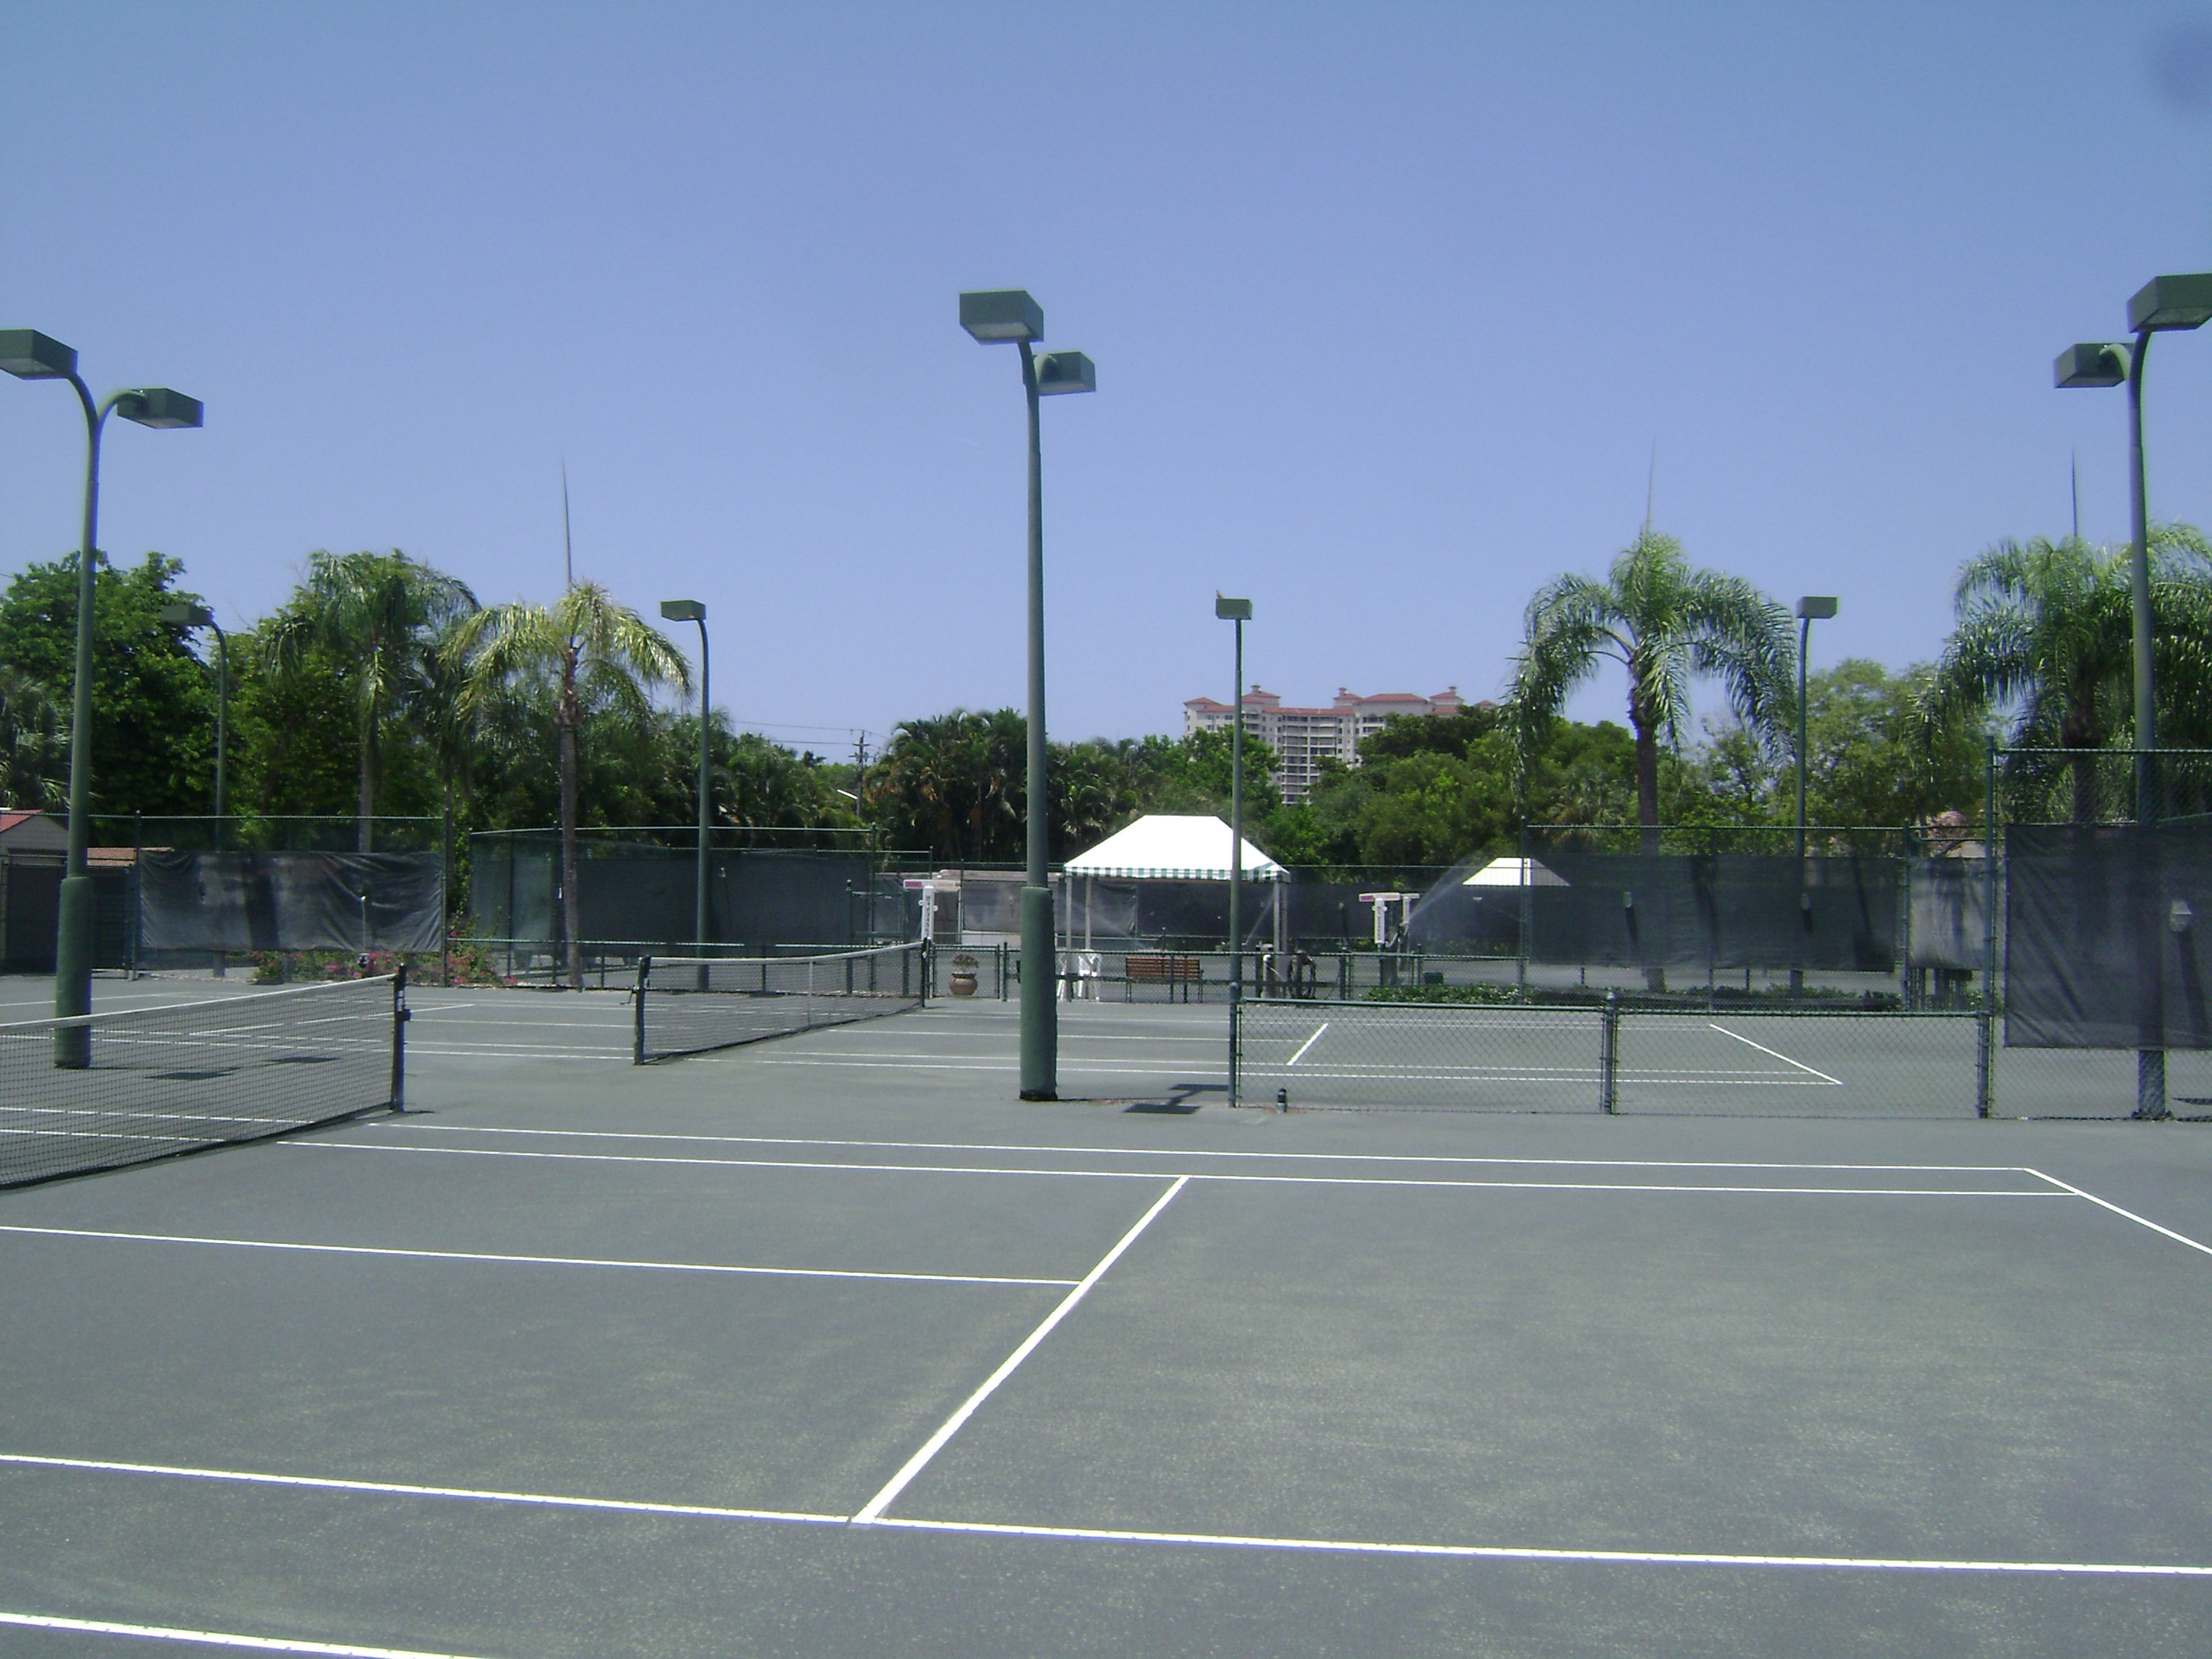 Tennis courts at Beachwalk in Naples, Florida.